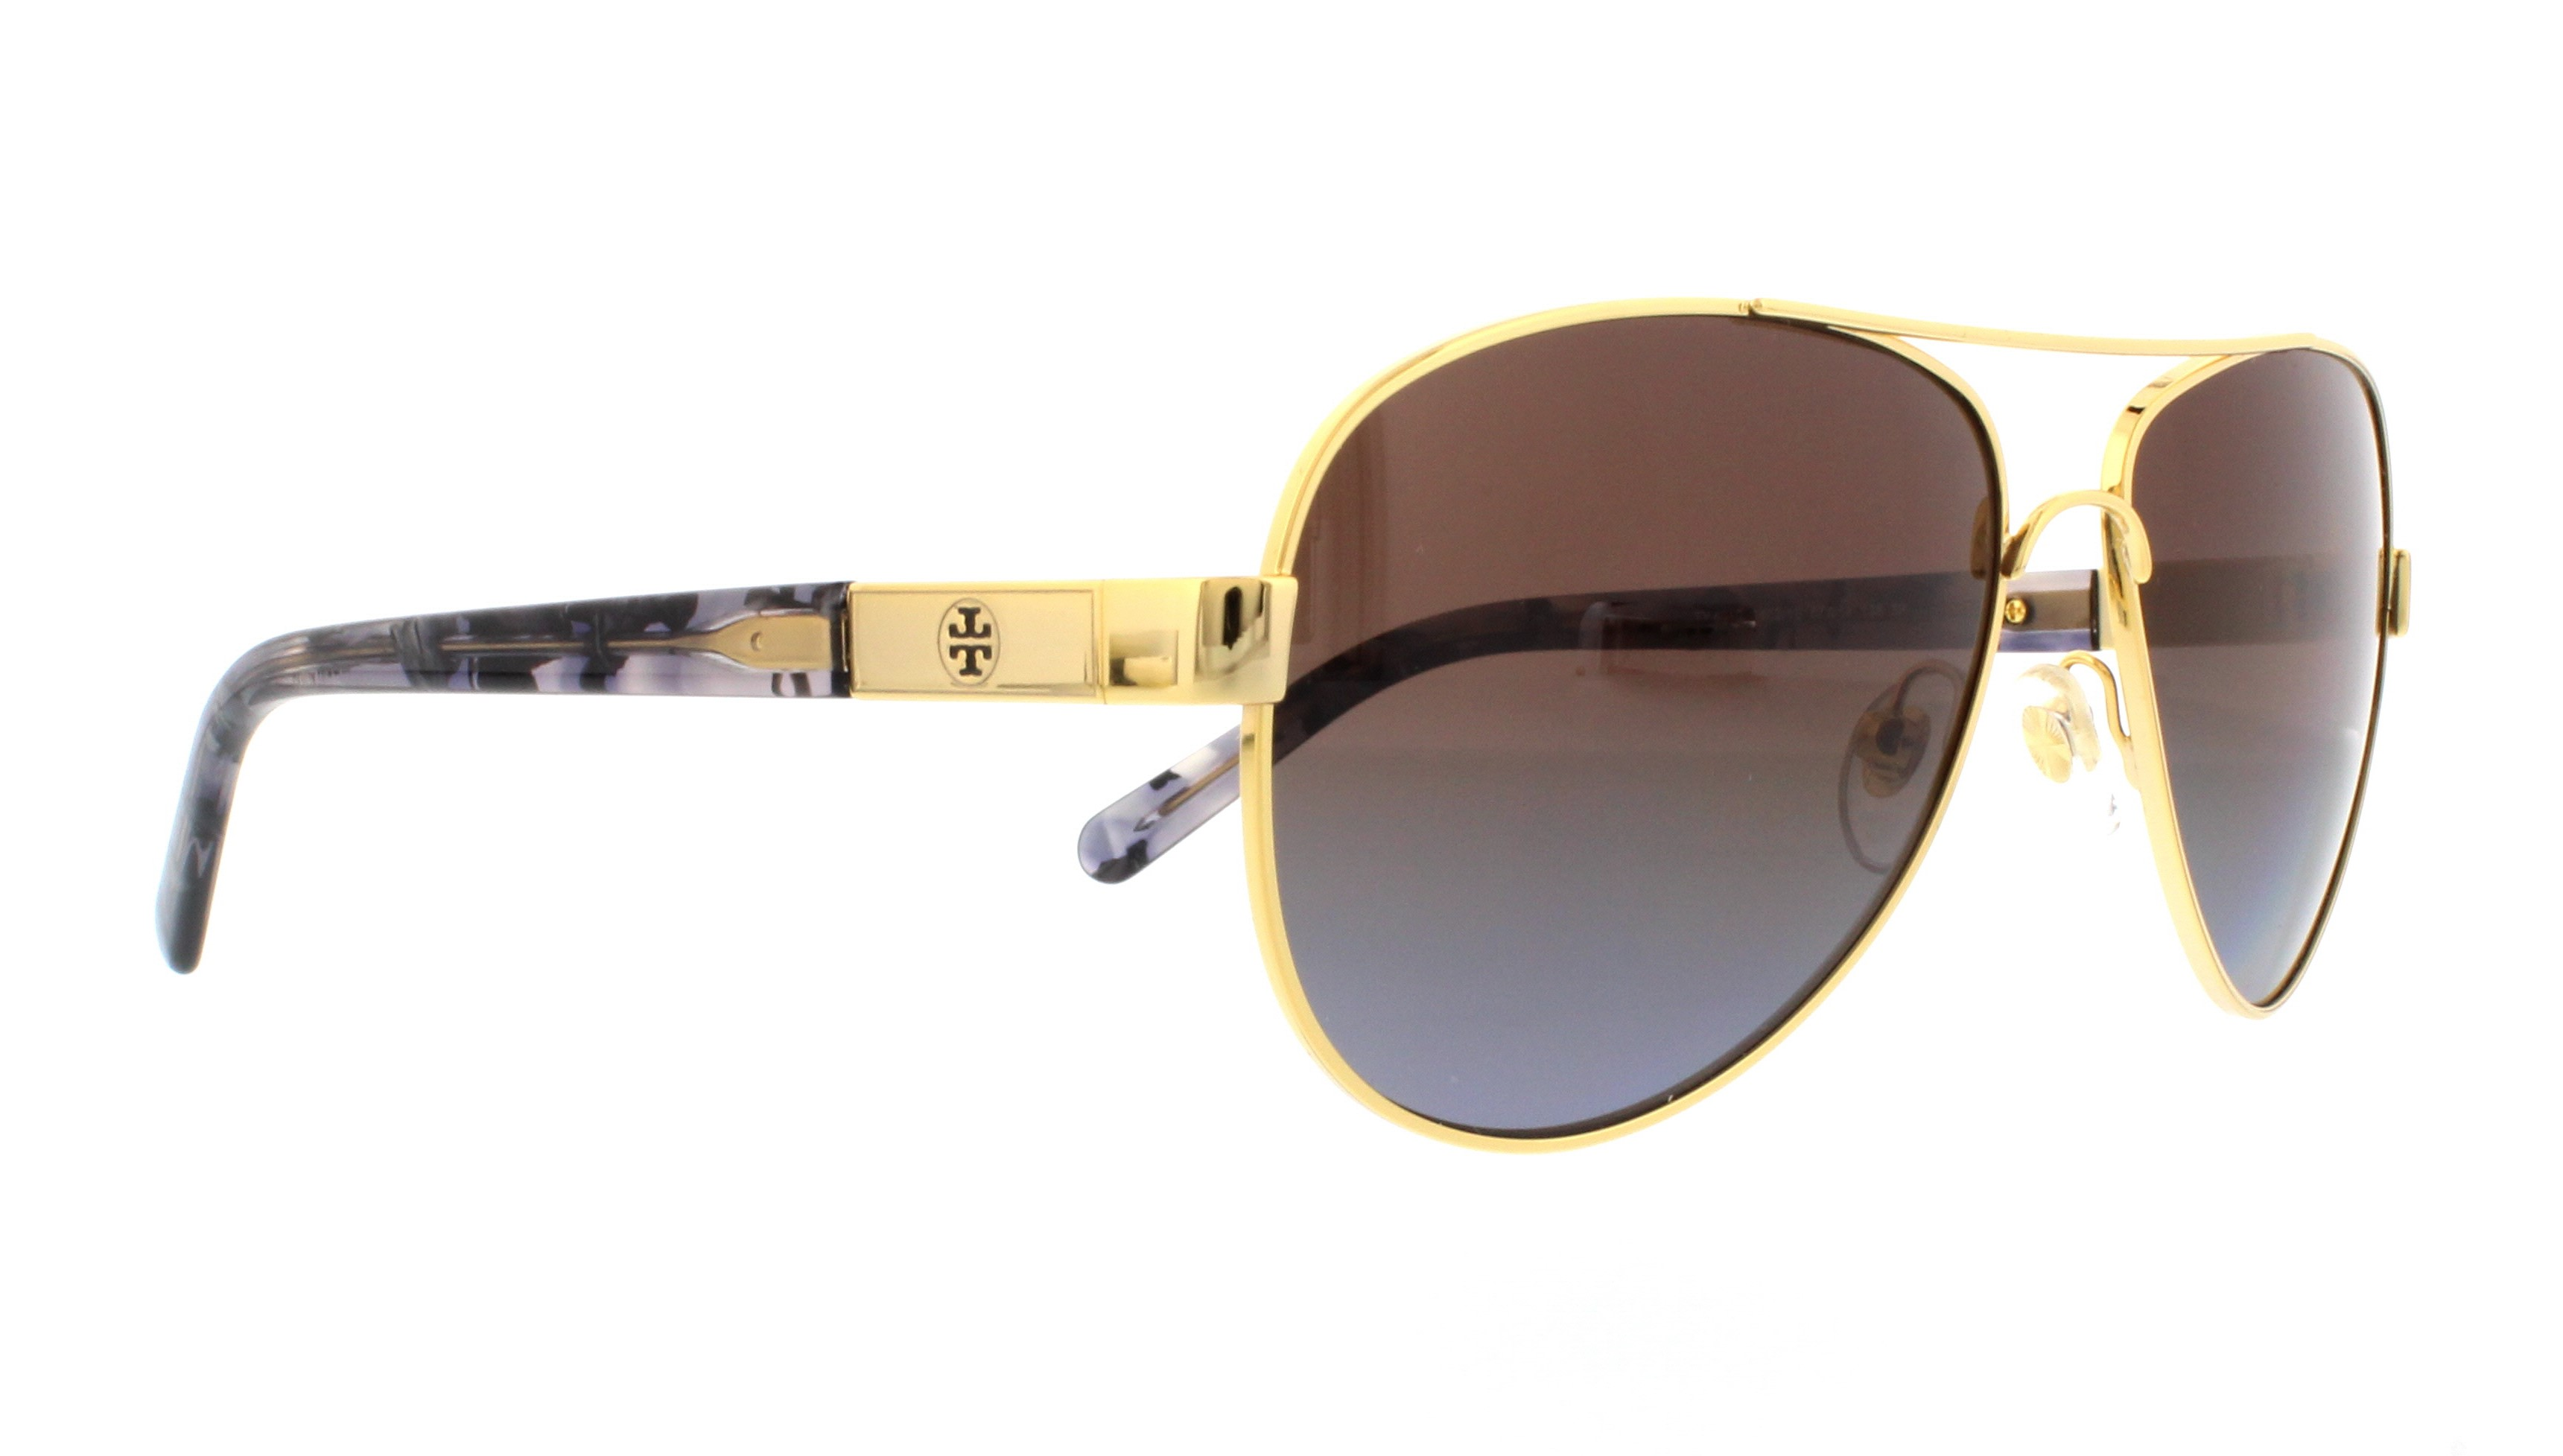 9baa7bf8471 Designer Frames Outlet. Tory Burch TY6010